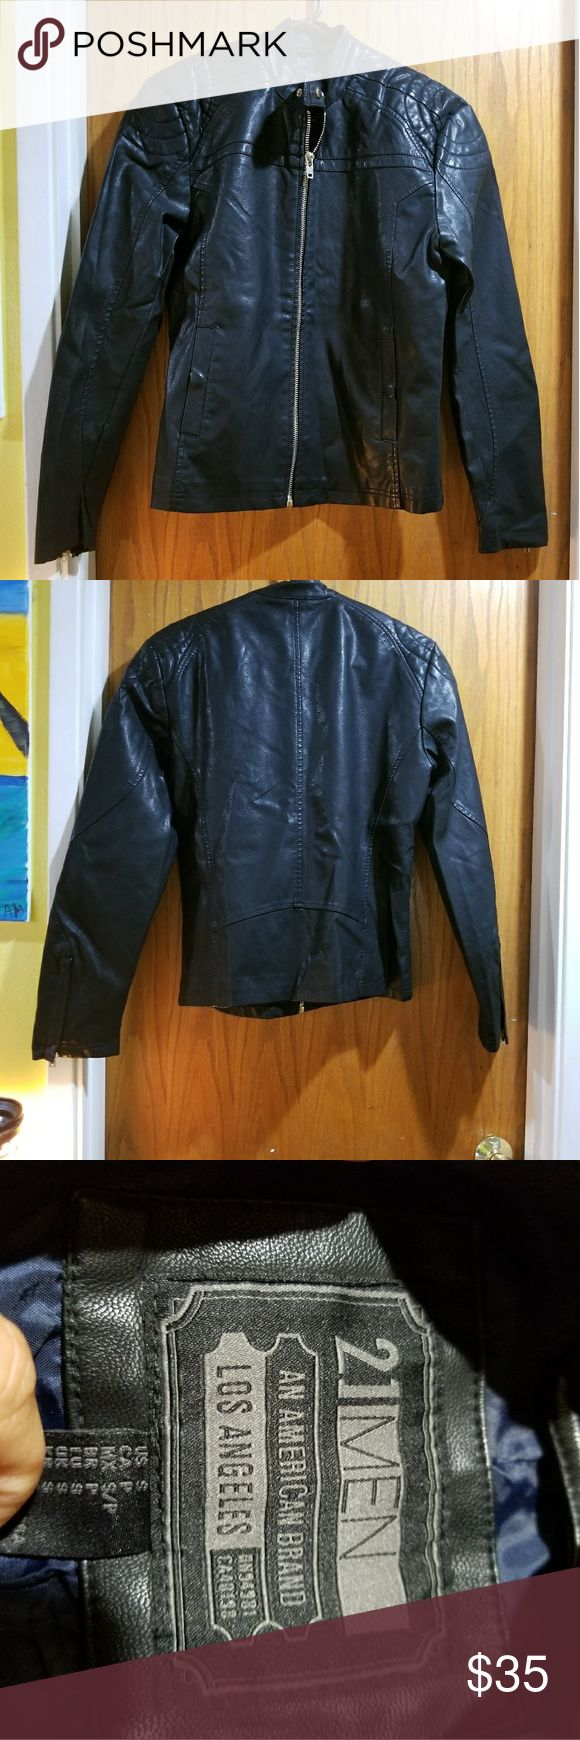 Men's Fuax Leather jacket Great condition only worn one time. This is from forever 21. 21men Jackets & Coats Bomber & Varsity